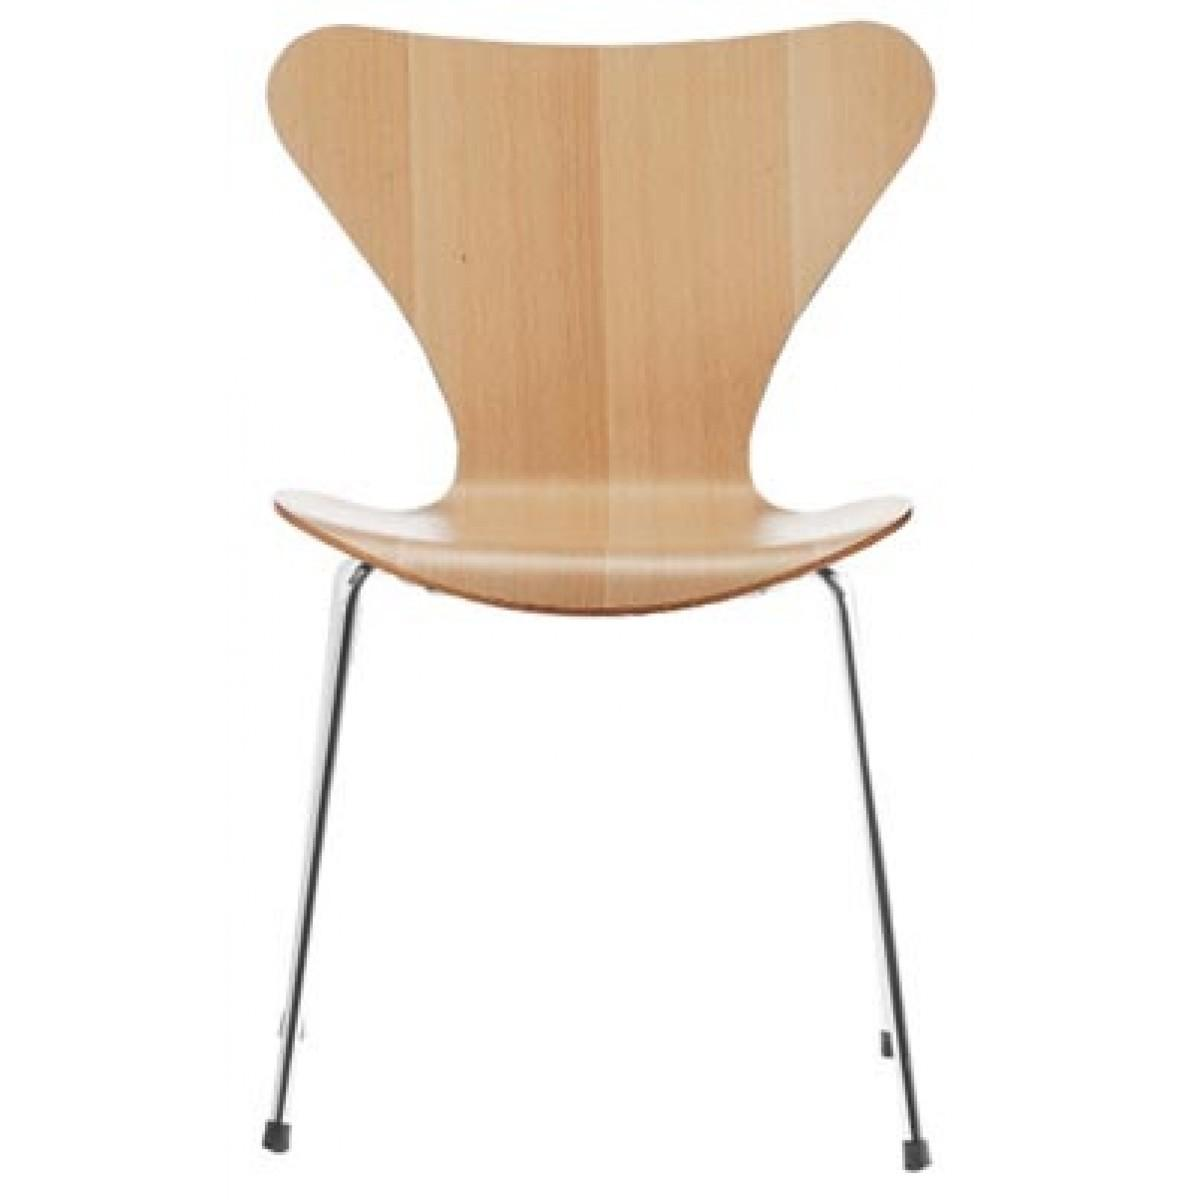 Arne Jacobsen Style Series Chair